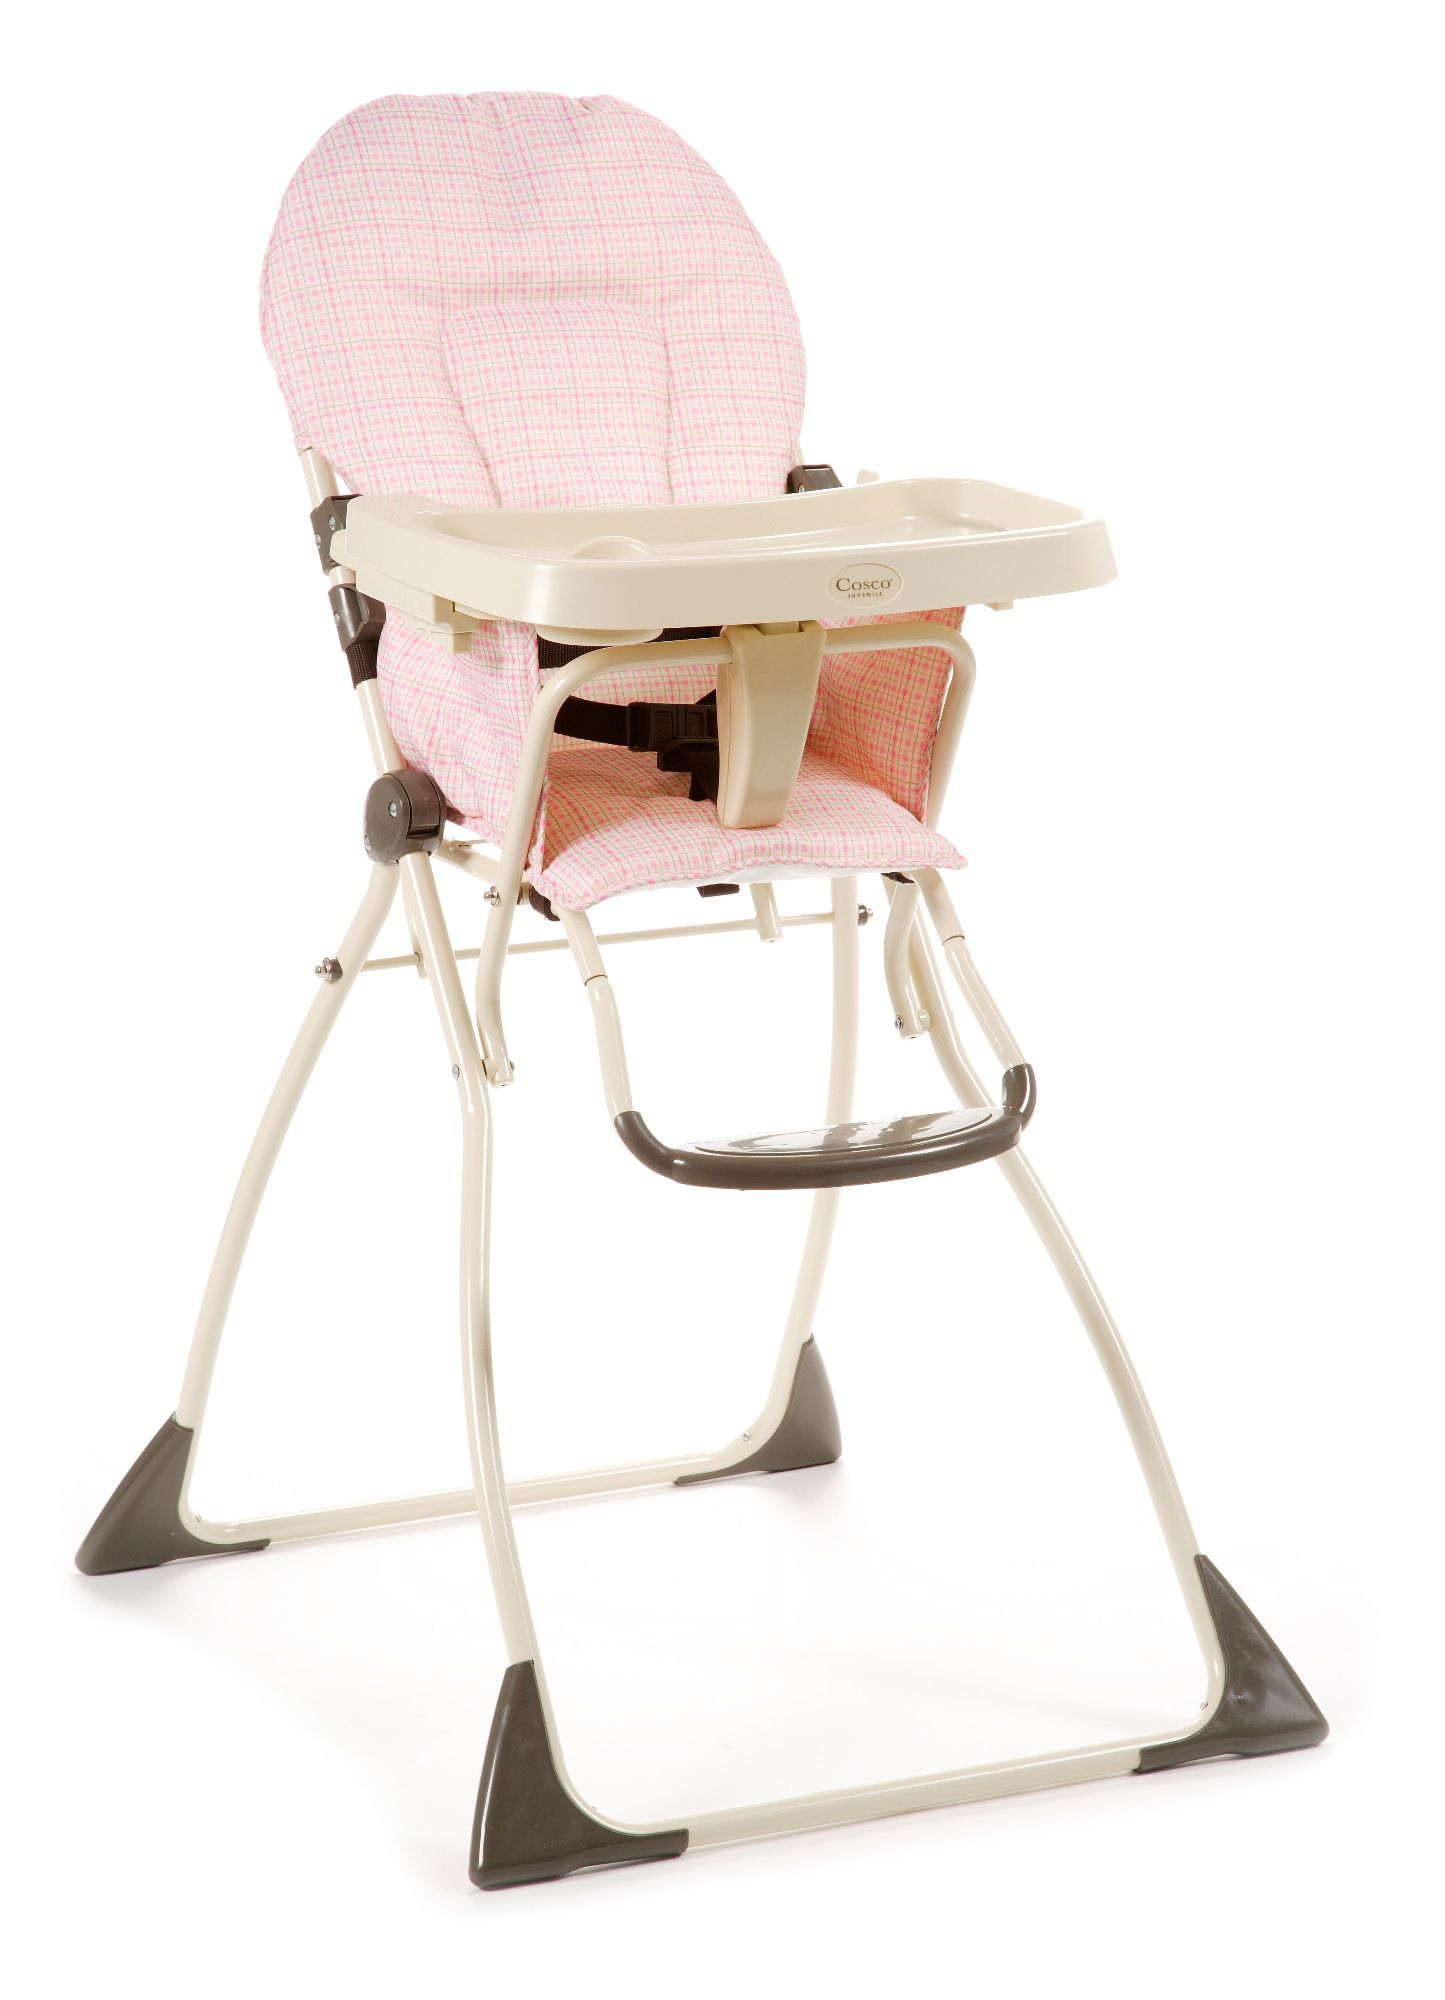 high chair that folds flat pop up tent chairs cosco fold hannah